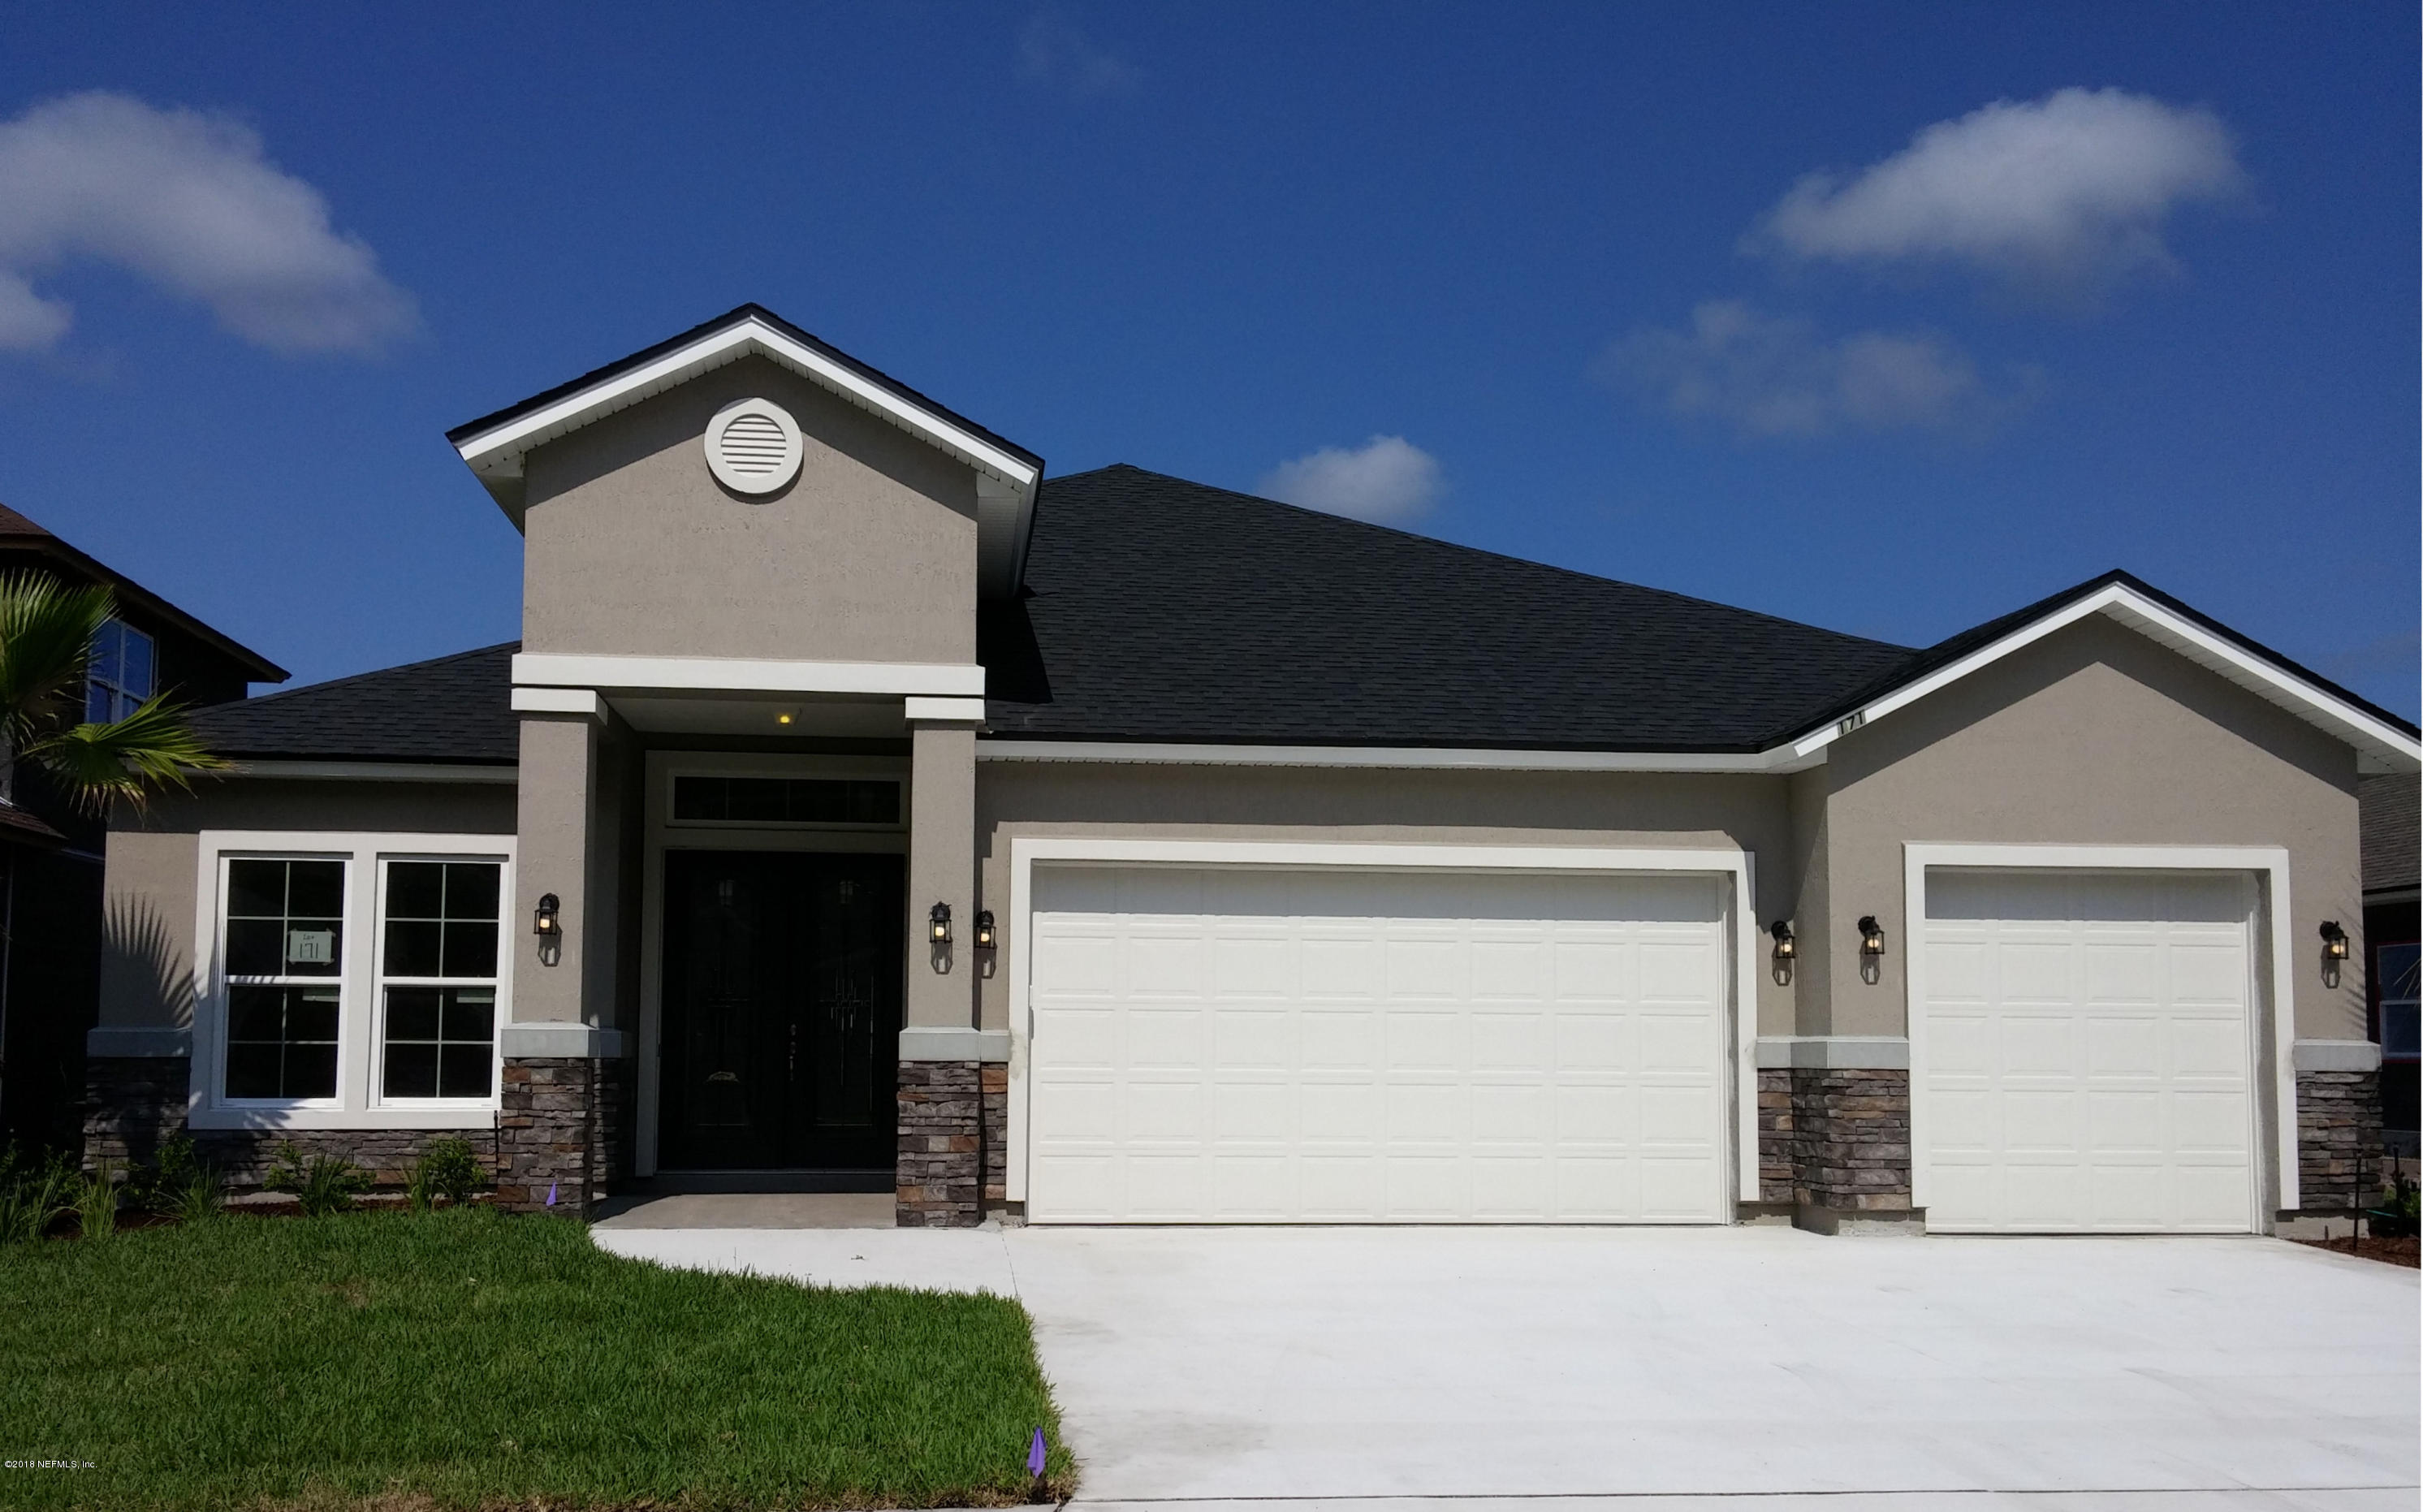 660  BENT CREEK DR, Saint Johns in ST. JOHNS County, FL 32259 Home for Sale